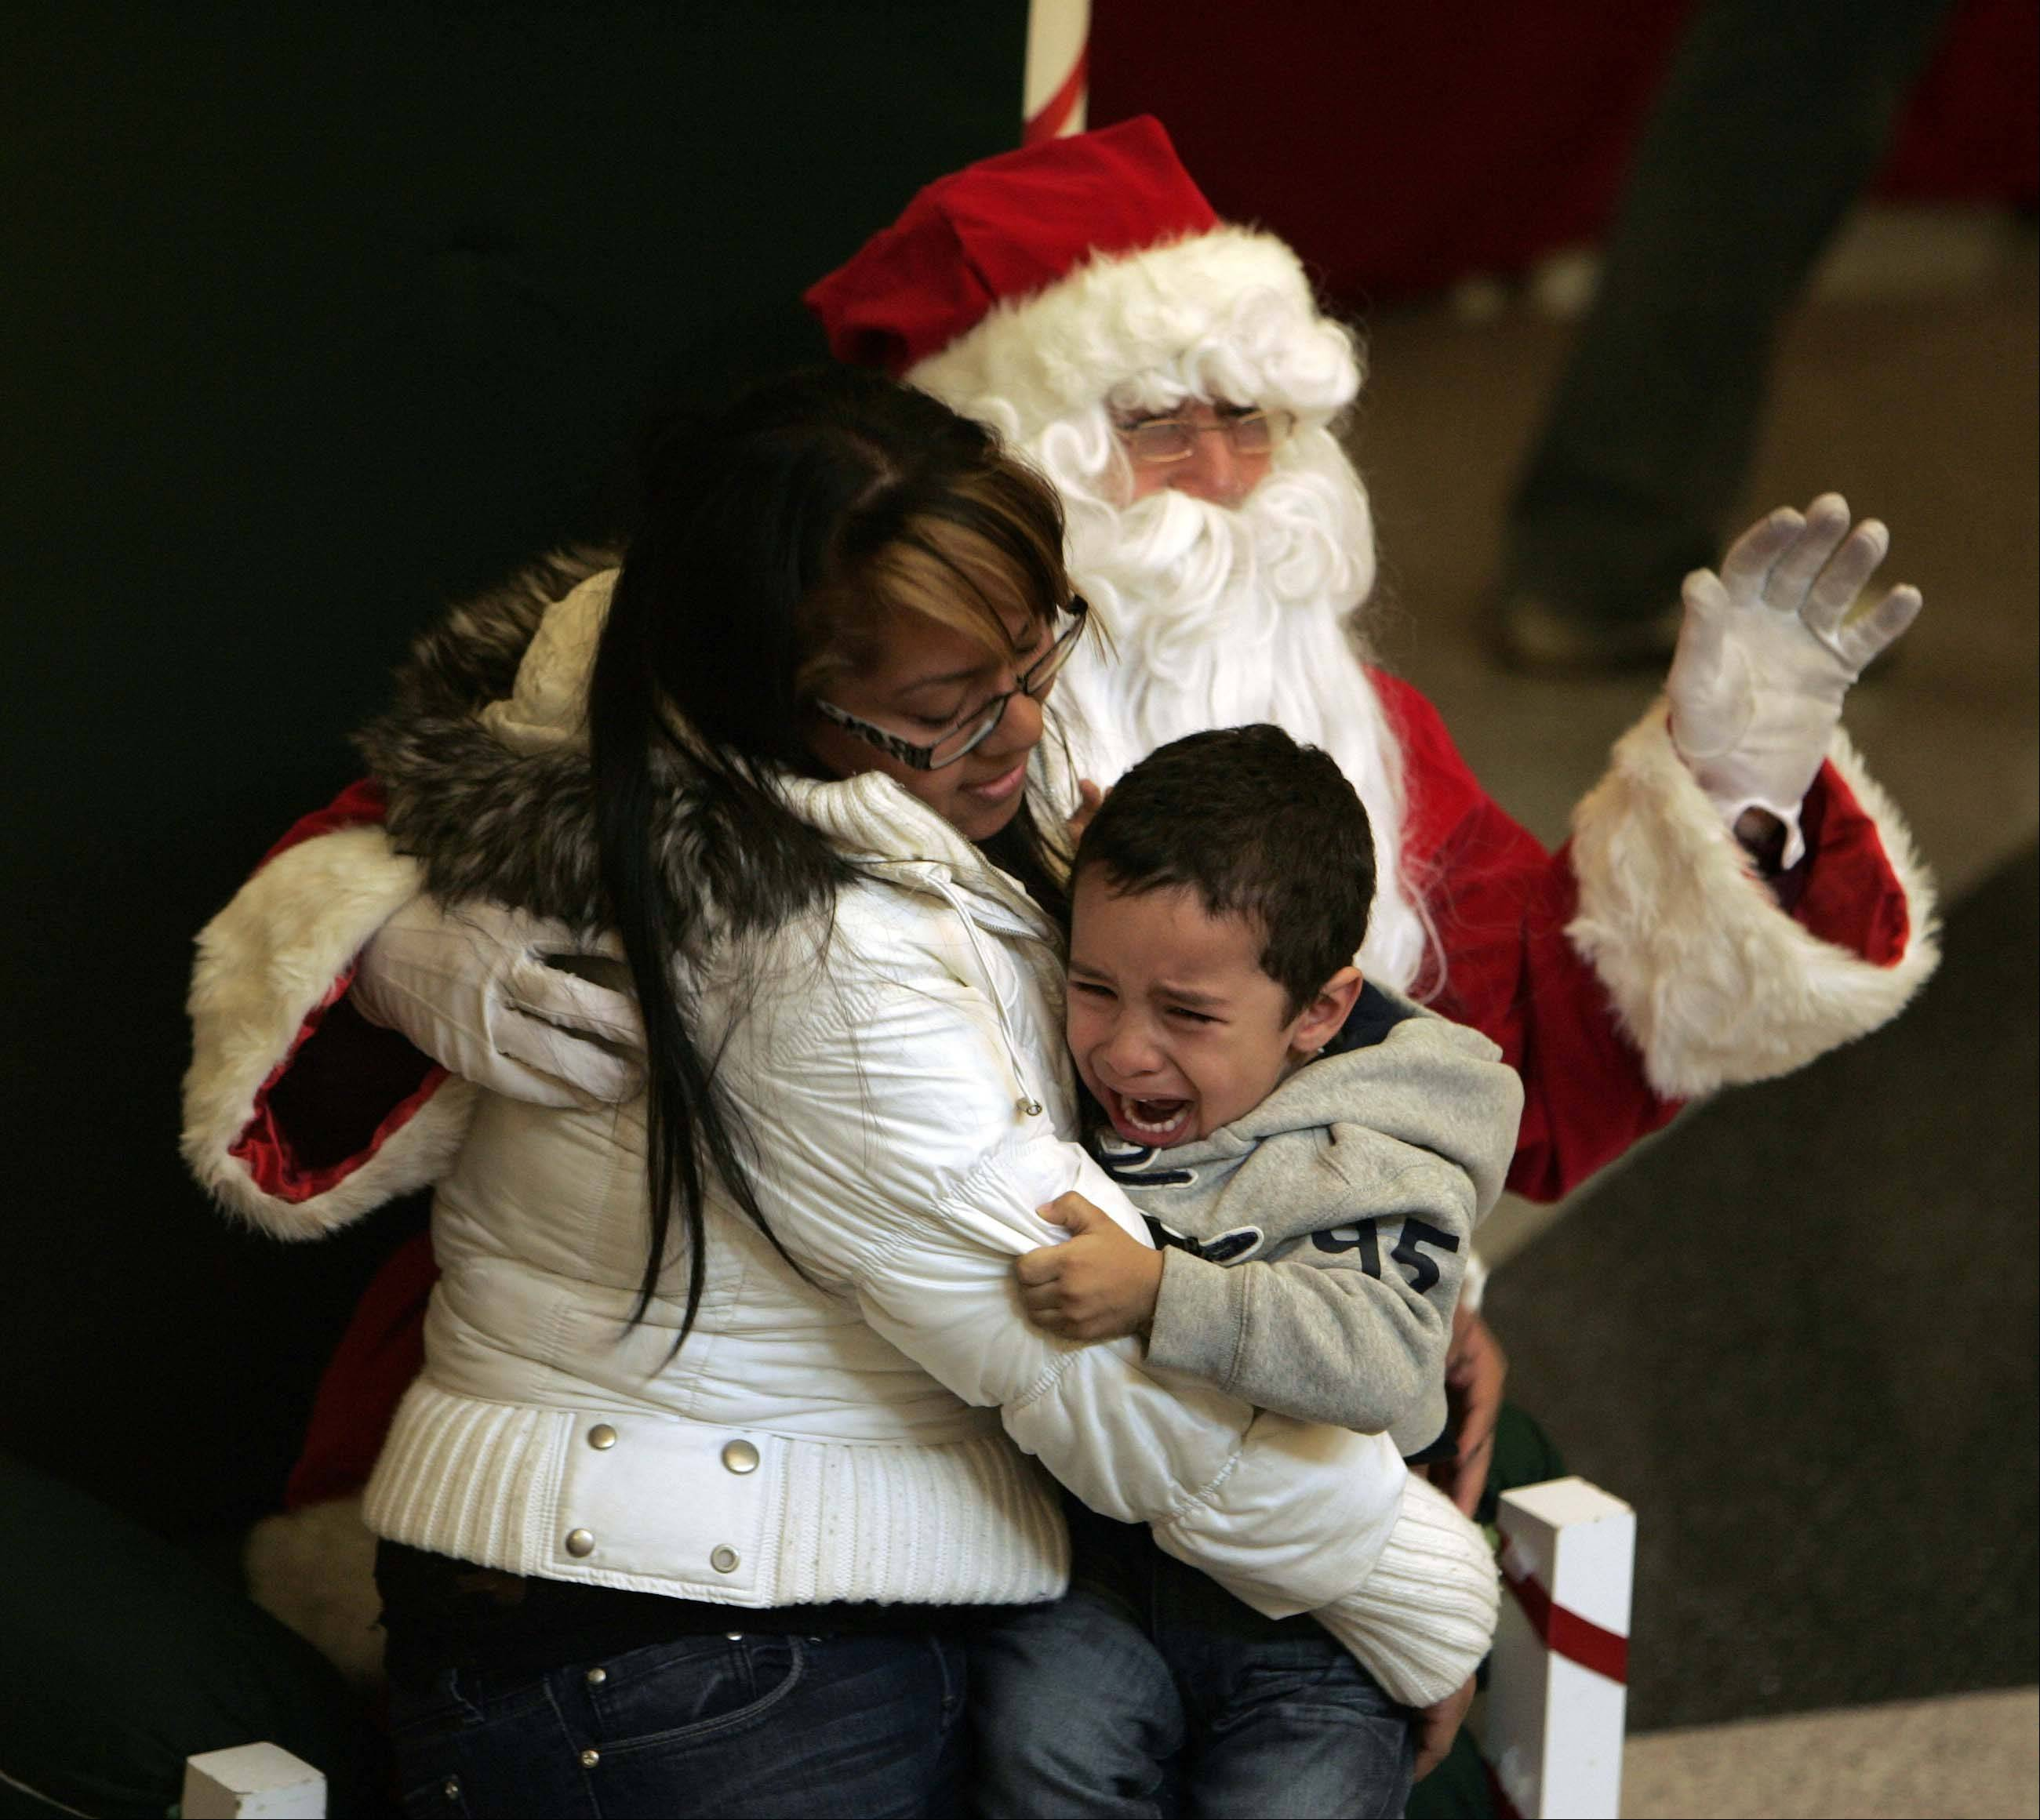 Sonia Albarran of Elgin tries to comfort her son Xavier Marques, 2, while visiting Santa during the Elgin Home for the Holidays, event Saturday November 3, 2012 at the Gail Borden Public Library in Elgin.